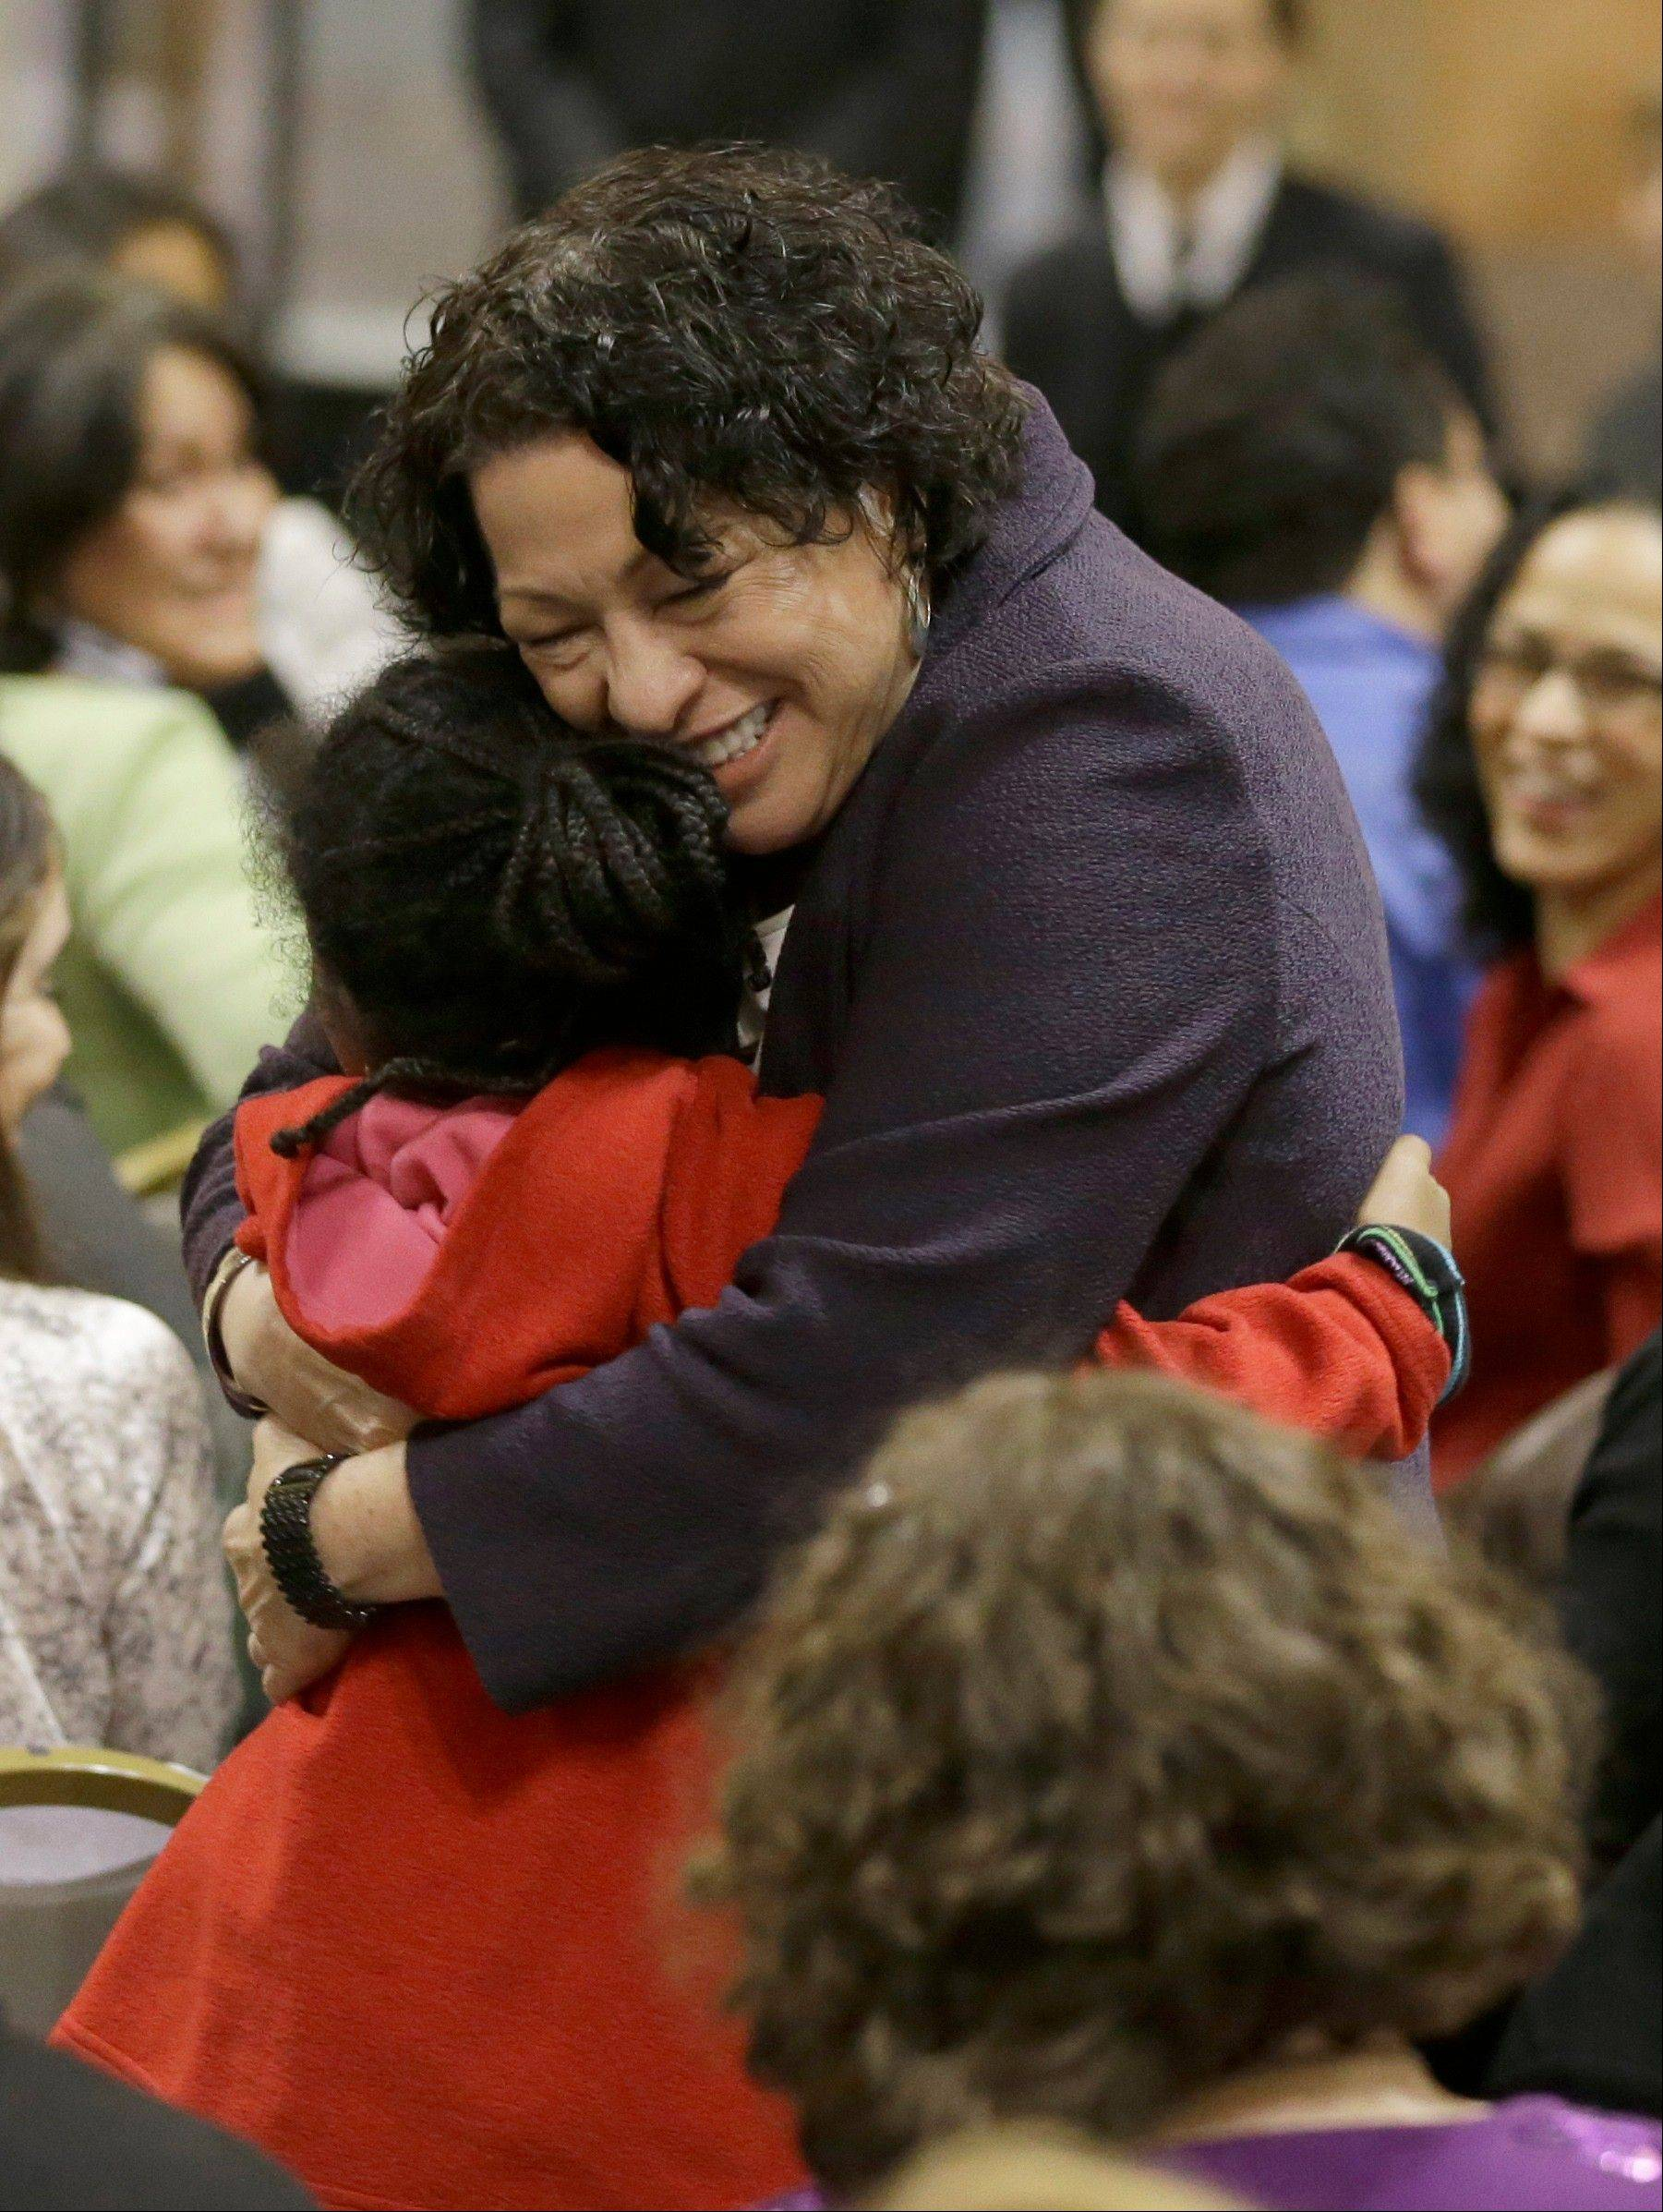 U.S. Supreme Court Justice Sonia Sotomayor hugs Tabbie Major, 7, during a question-and-answer session Wednesday at the Chicago Public Library.